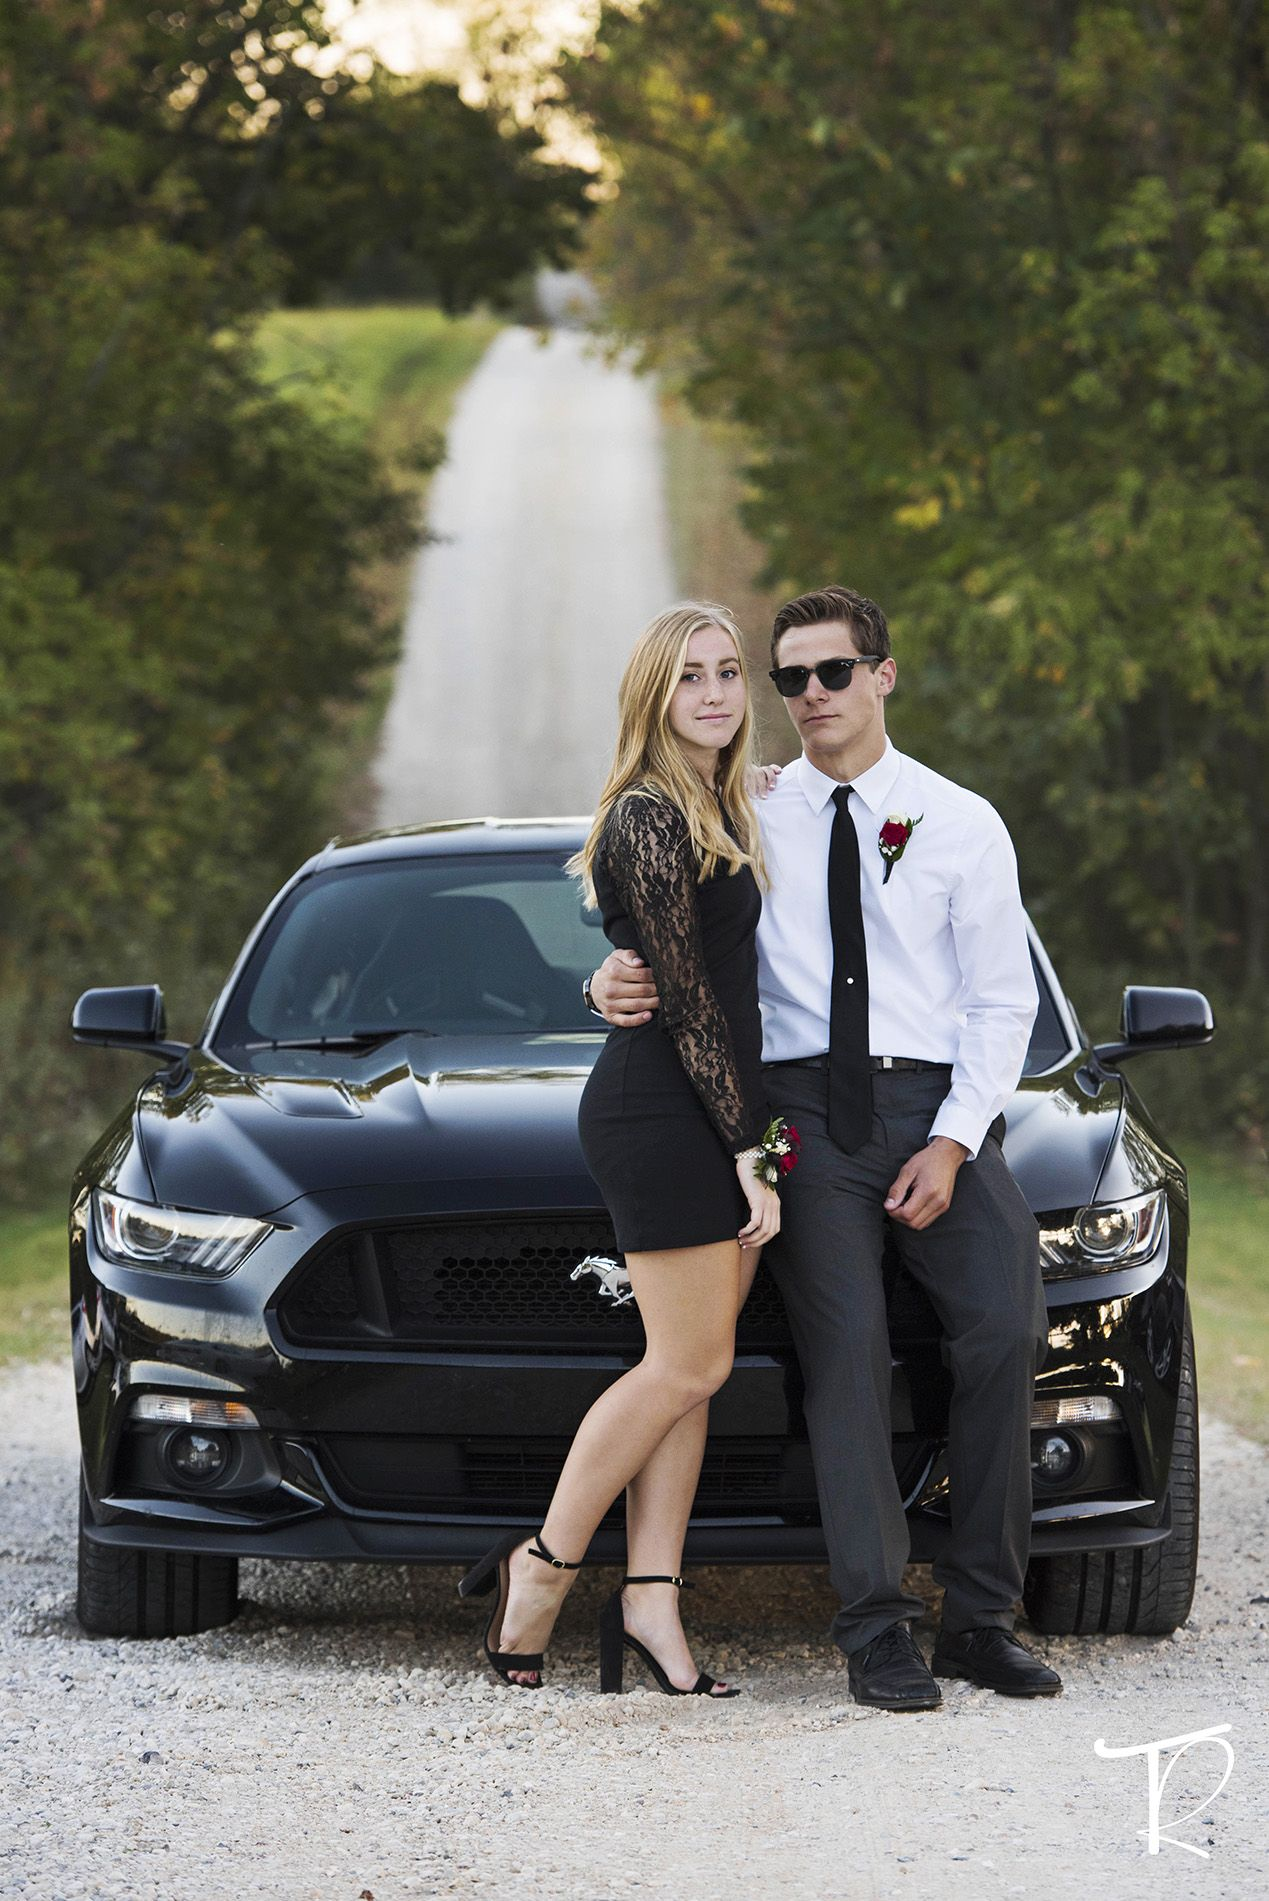 Homecoming, Couple, Car | Prom pictures couples, Prom